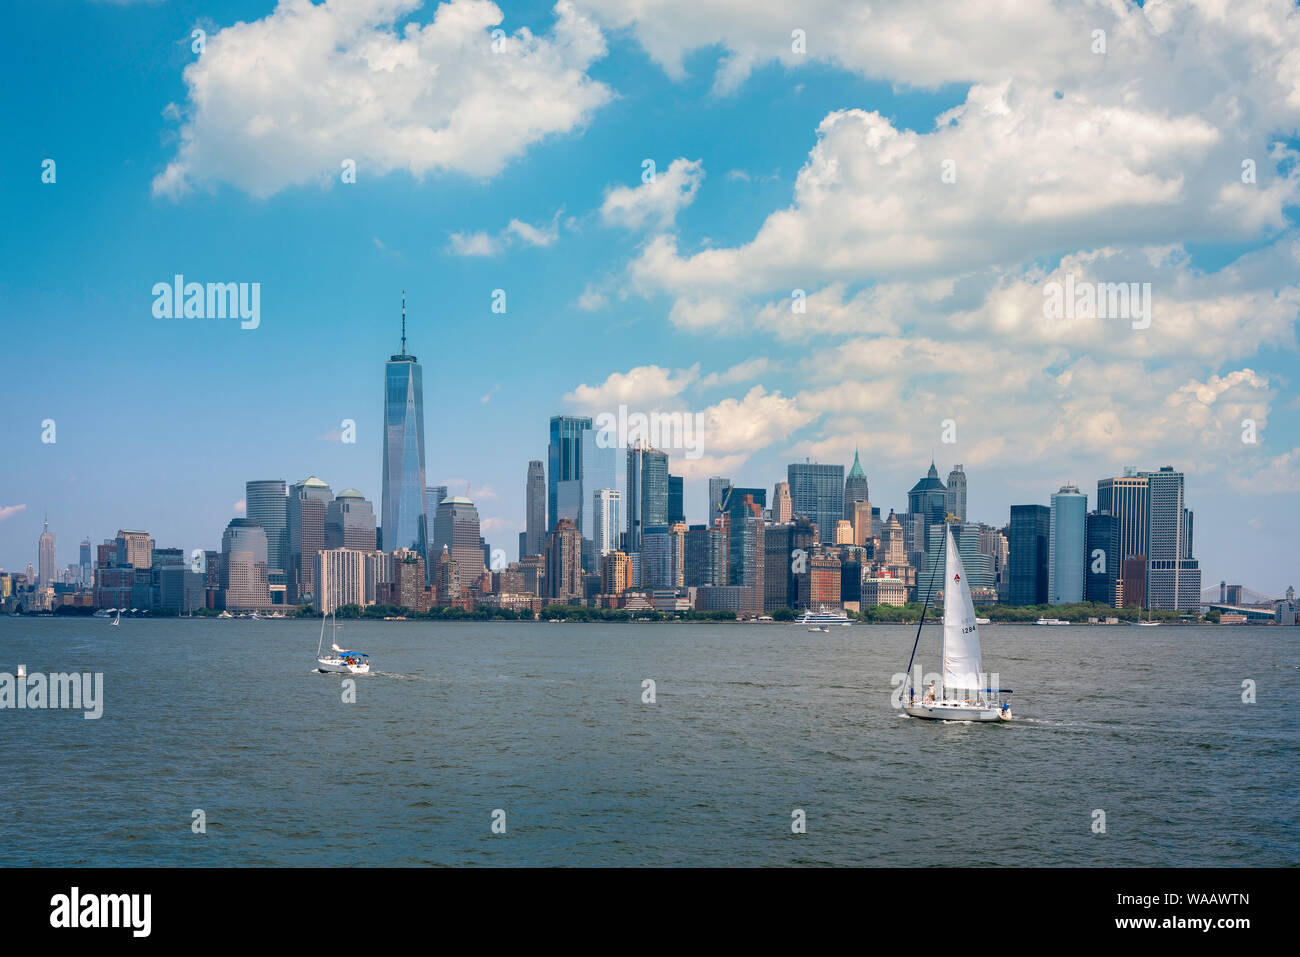 New York City lifestyle, view in summer of New Yorkers sailing their yachts  in the Lower Manhattan bay area, New York City, USA. Stock Photo